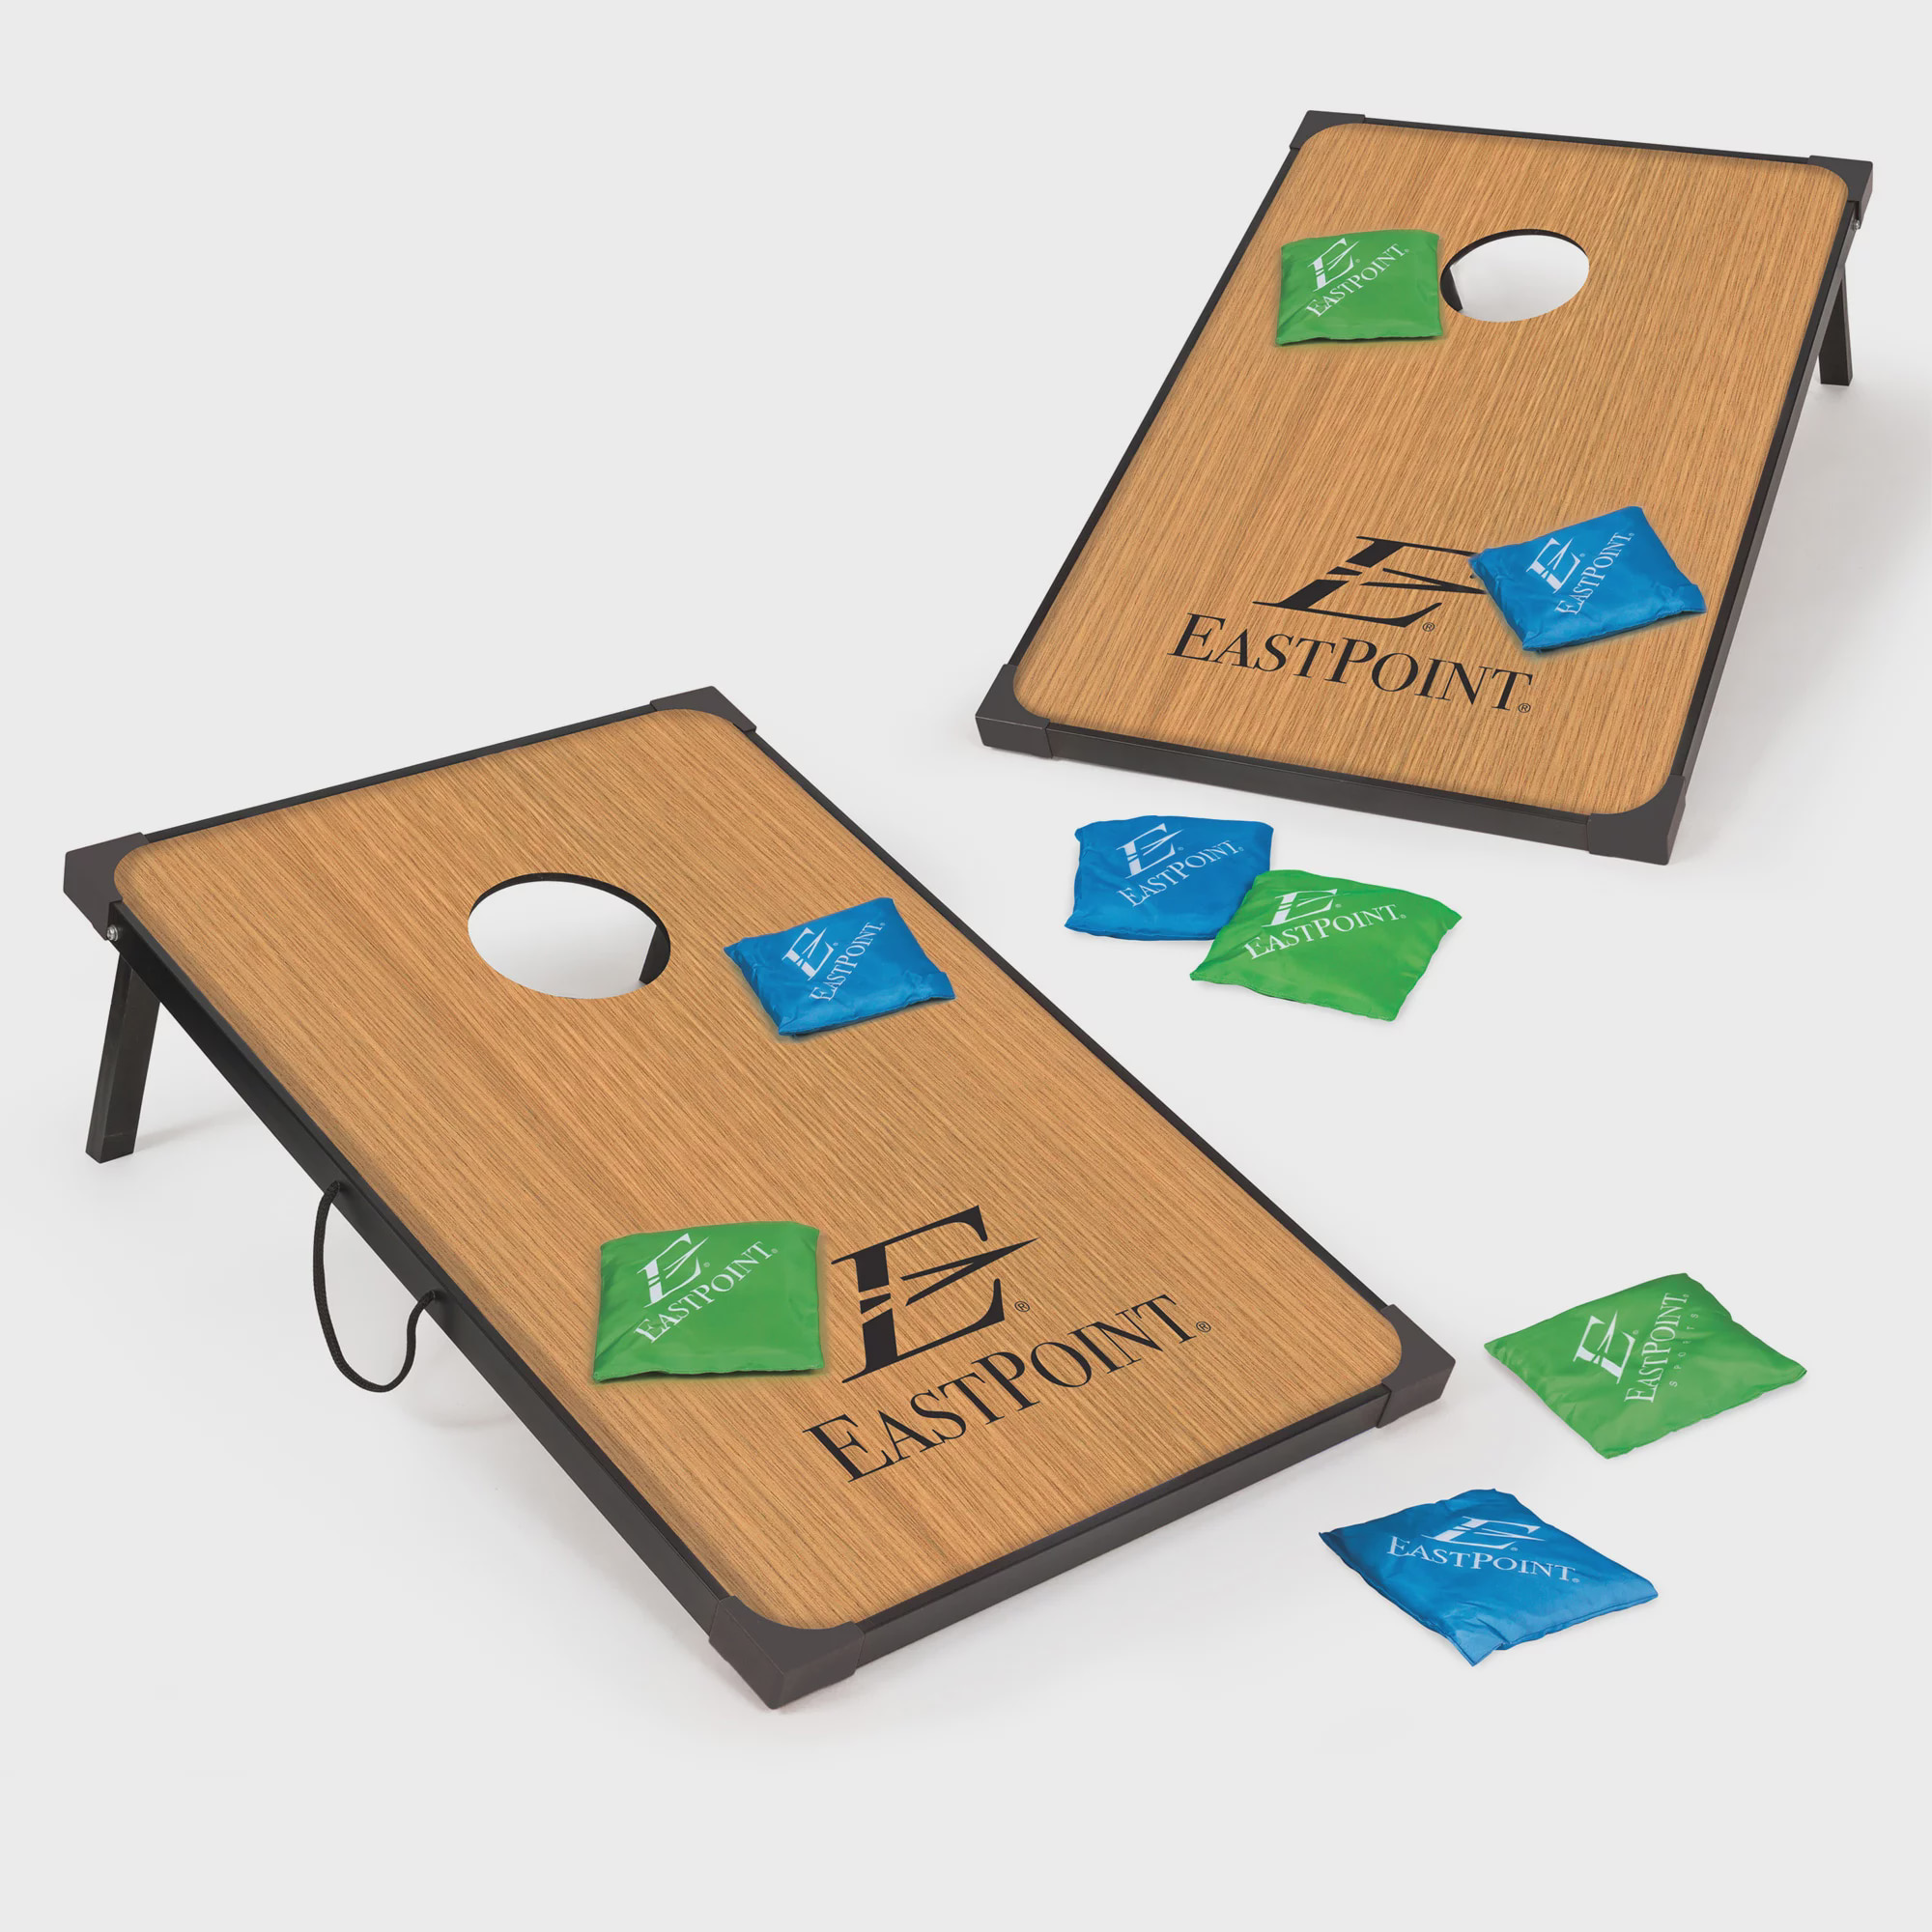 Phenomenal Eastpoint Sports Deluxe Bean Bag Toss 3 Ft X 2 Ft Bean Bag Toss Boards Feature Reinforced Corners And Sides For Exciting Play 8 Colorful Blue And Ibusinesslaw Wood Chair Design Ideas Ibusinesslaworg